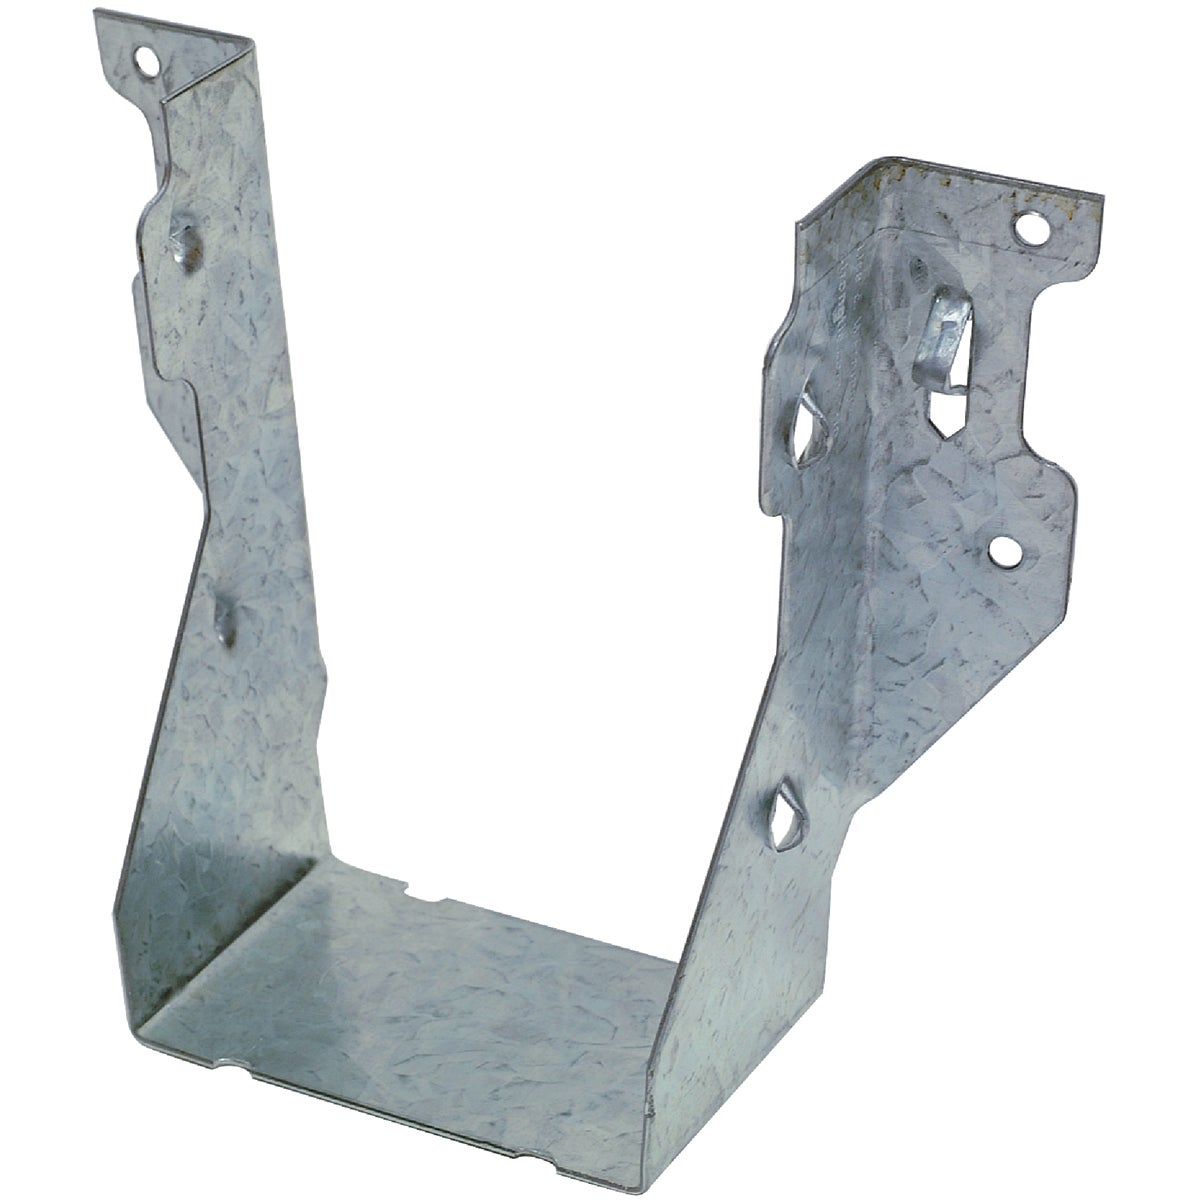 Simpson Strong-Tie 2X6 DOUBLE JOIST HANGER LUS26-2